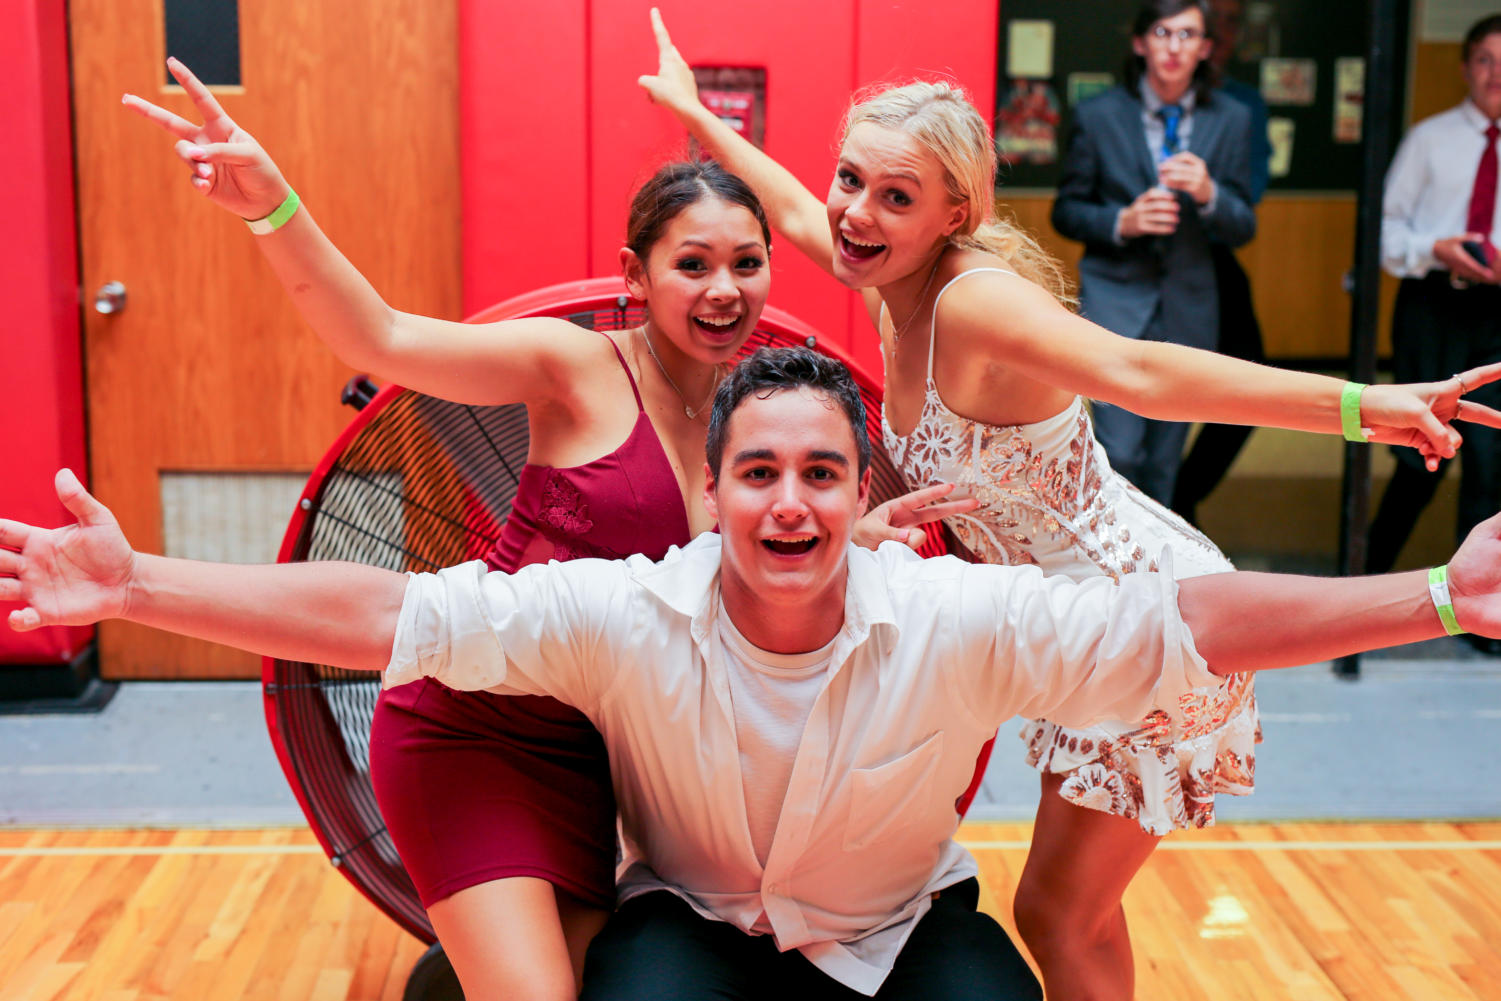 Seniors Jessica Nayden, Sarah Parduhn and Anthony Heelan pose in front of a fan after taking a break from dancing at this year's homecoming dance.